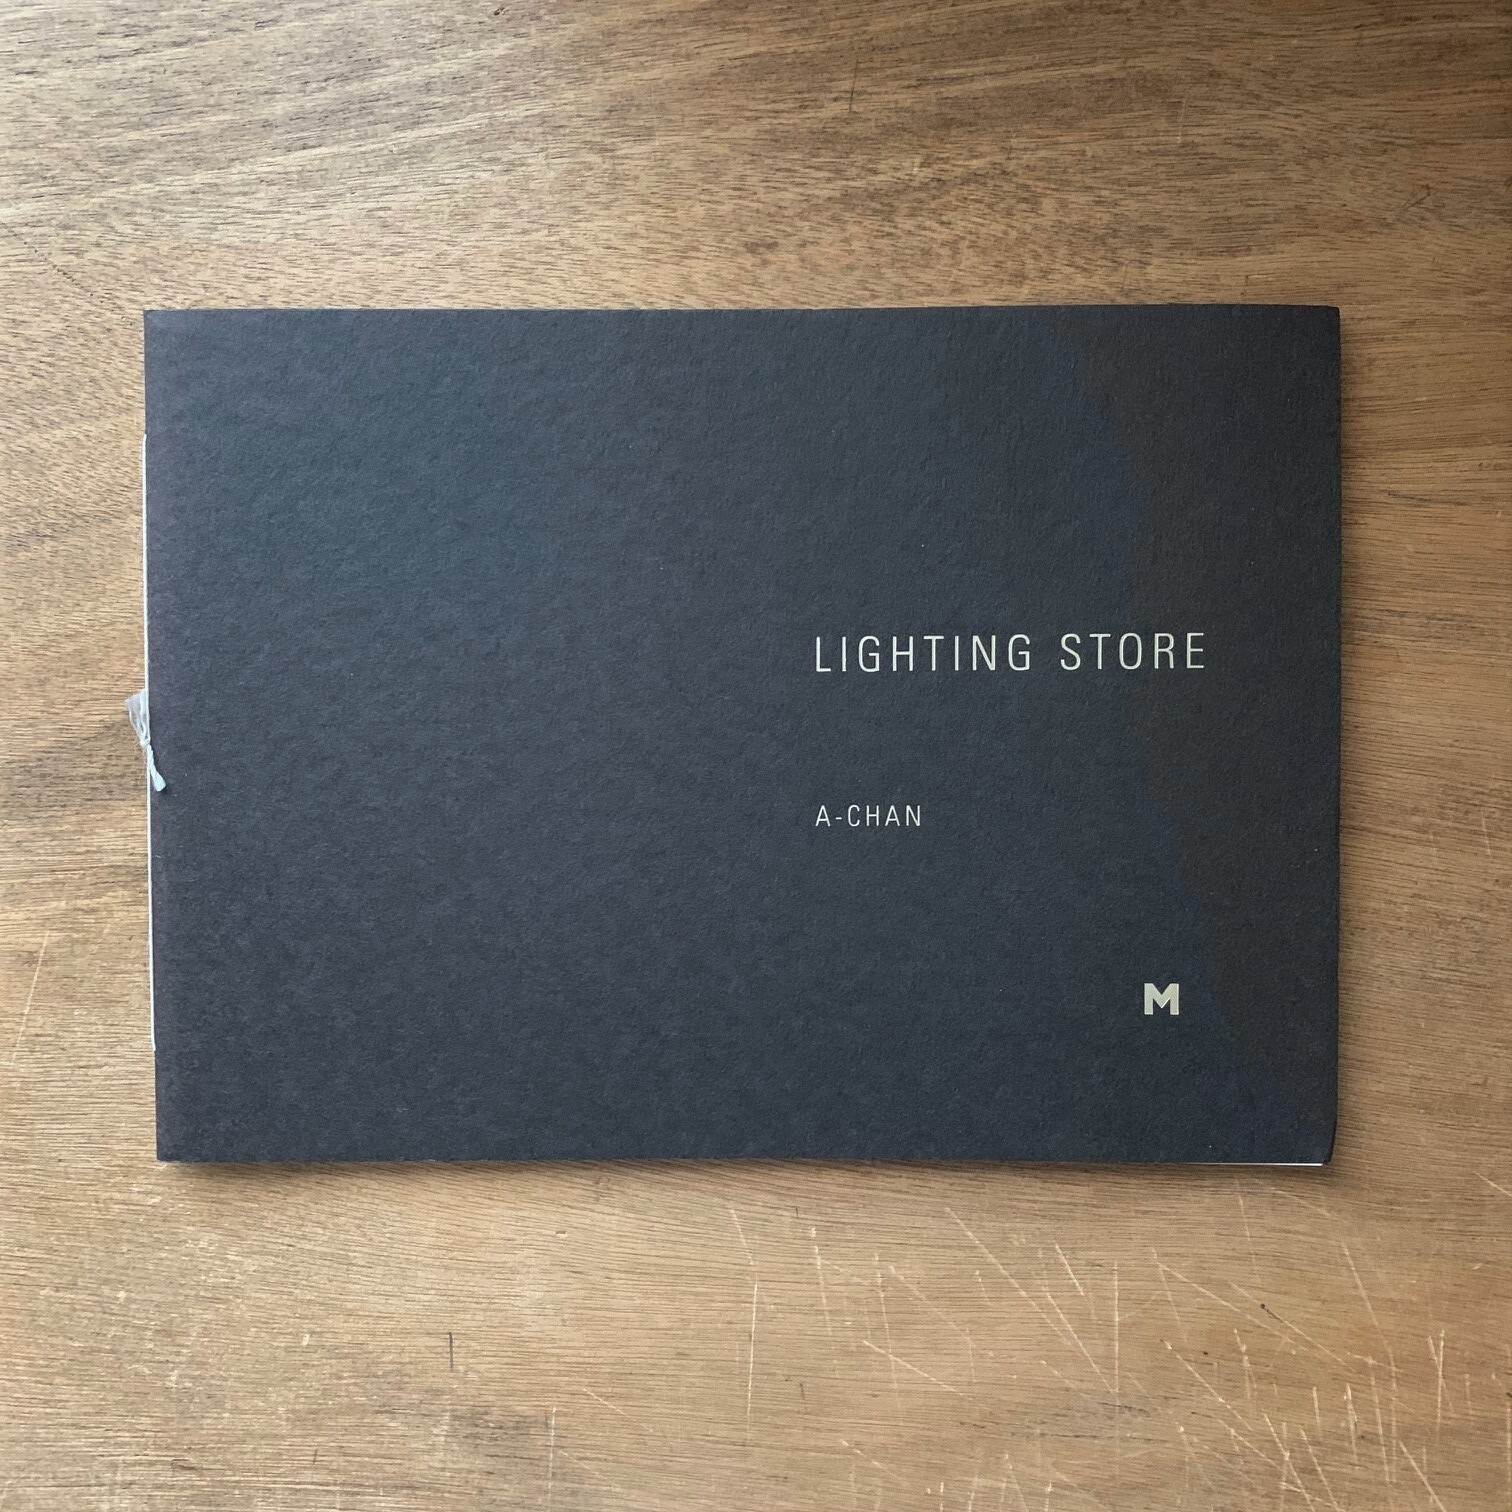 Lighting Store  /  A-Chan / MATCH &Company 2012